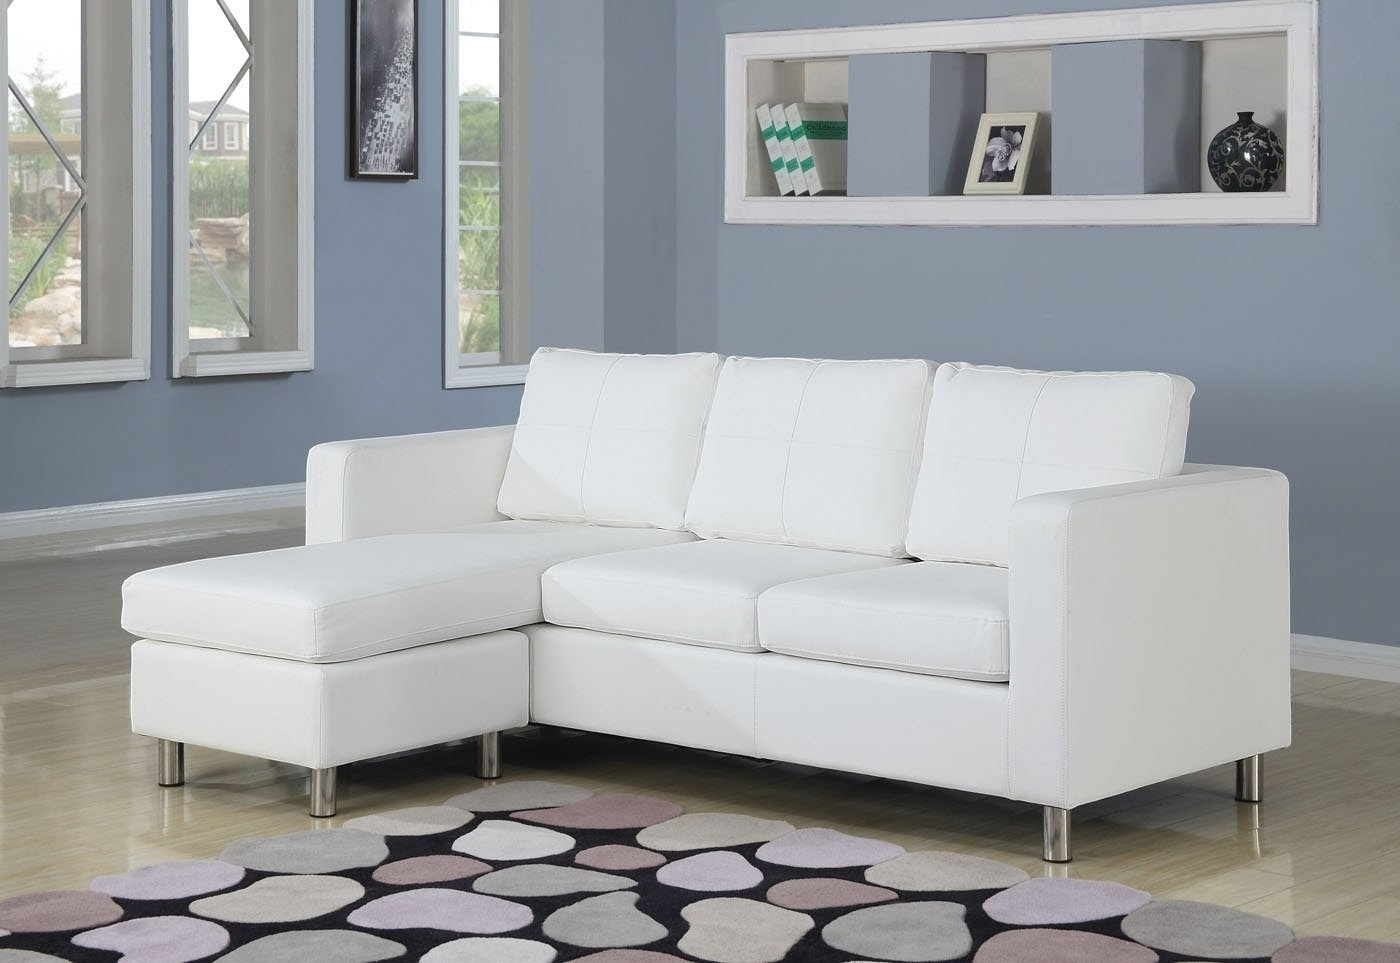 Well Known Furniture : Cb2 Sofa Warranty Sofa Chaise Longue Xxl Chaise Sofa In Sectional Sofas In Hyderabad (View 7 of 15)